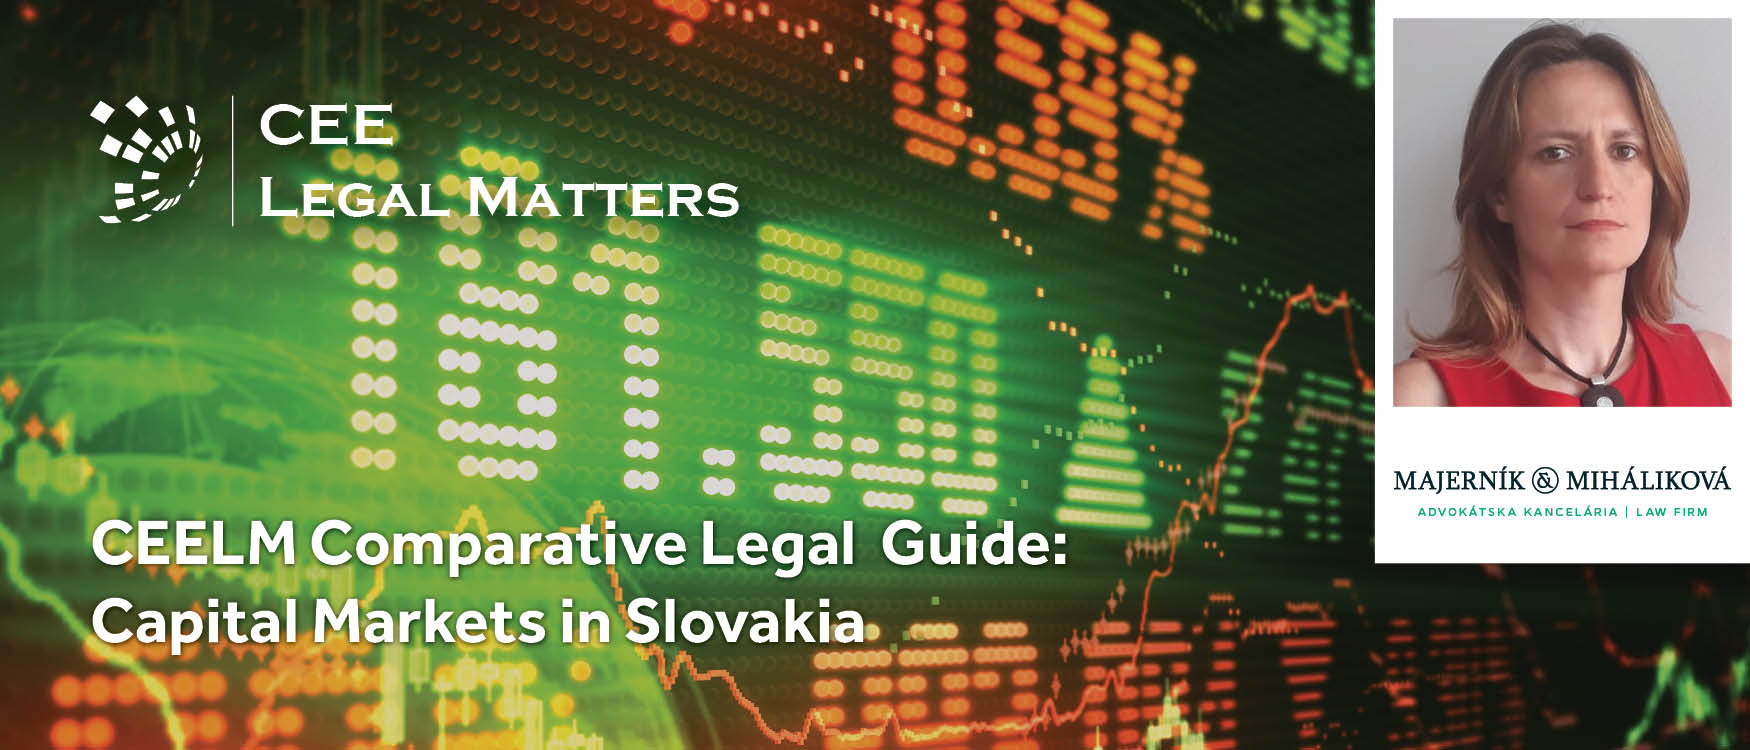 Capital Markets in Slovakia